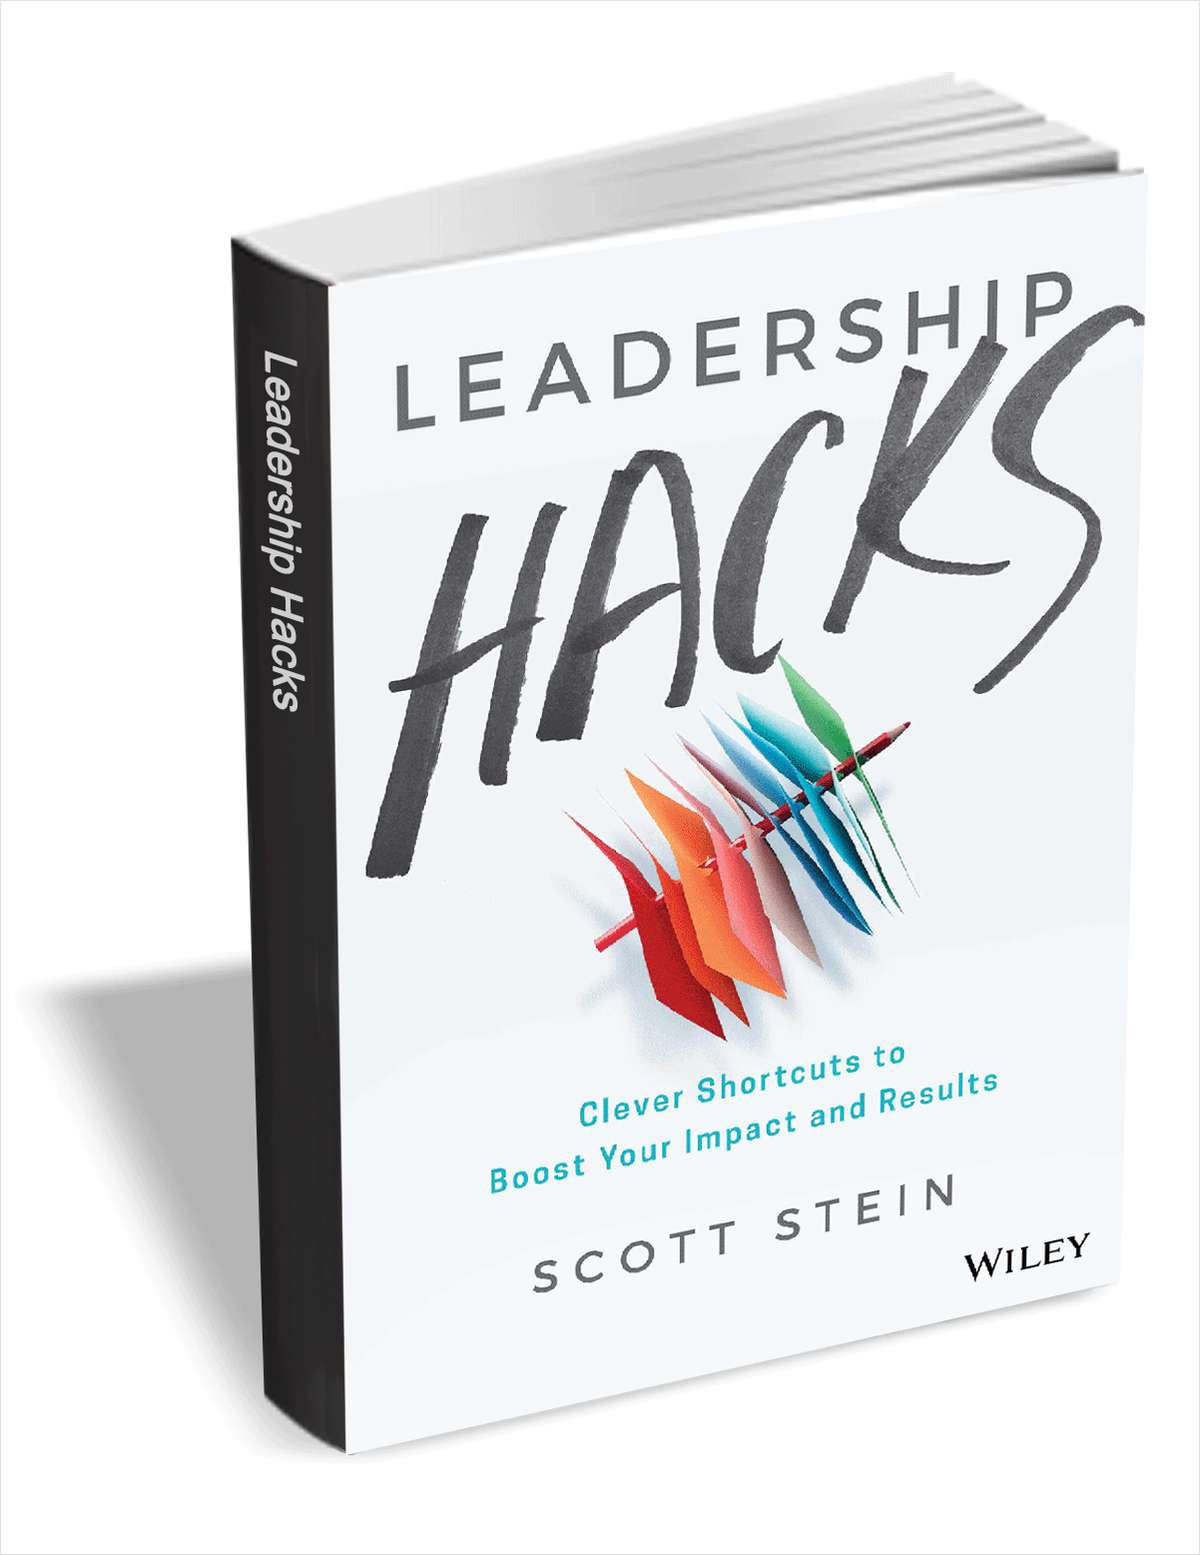 Leadership Hacks: Clever Shortcuts to Boost Your Impact and Results ($13.00 Value) FREE for a Limited Time Screenshot